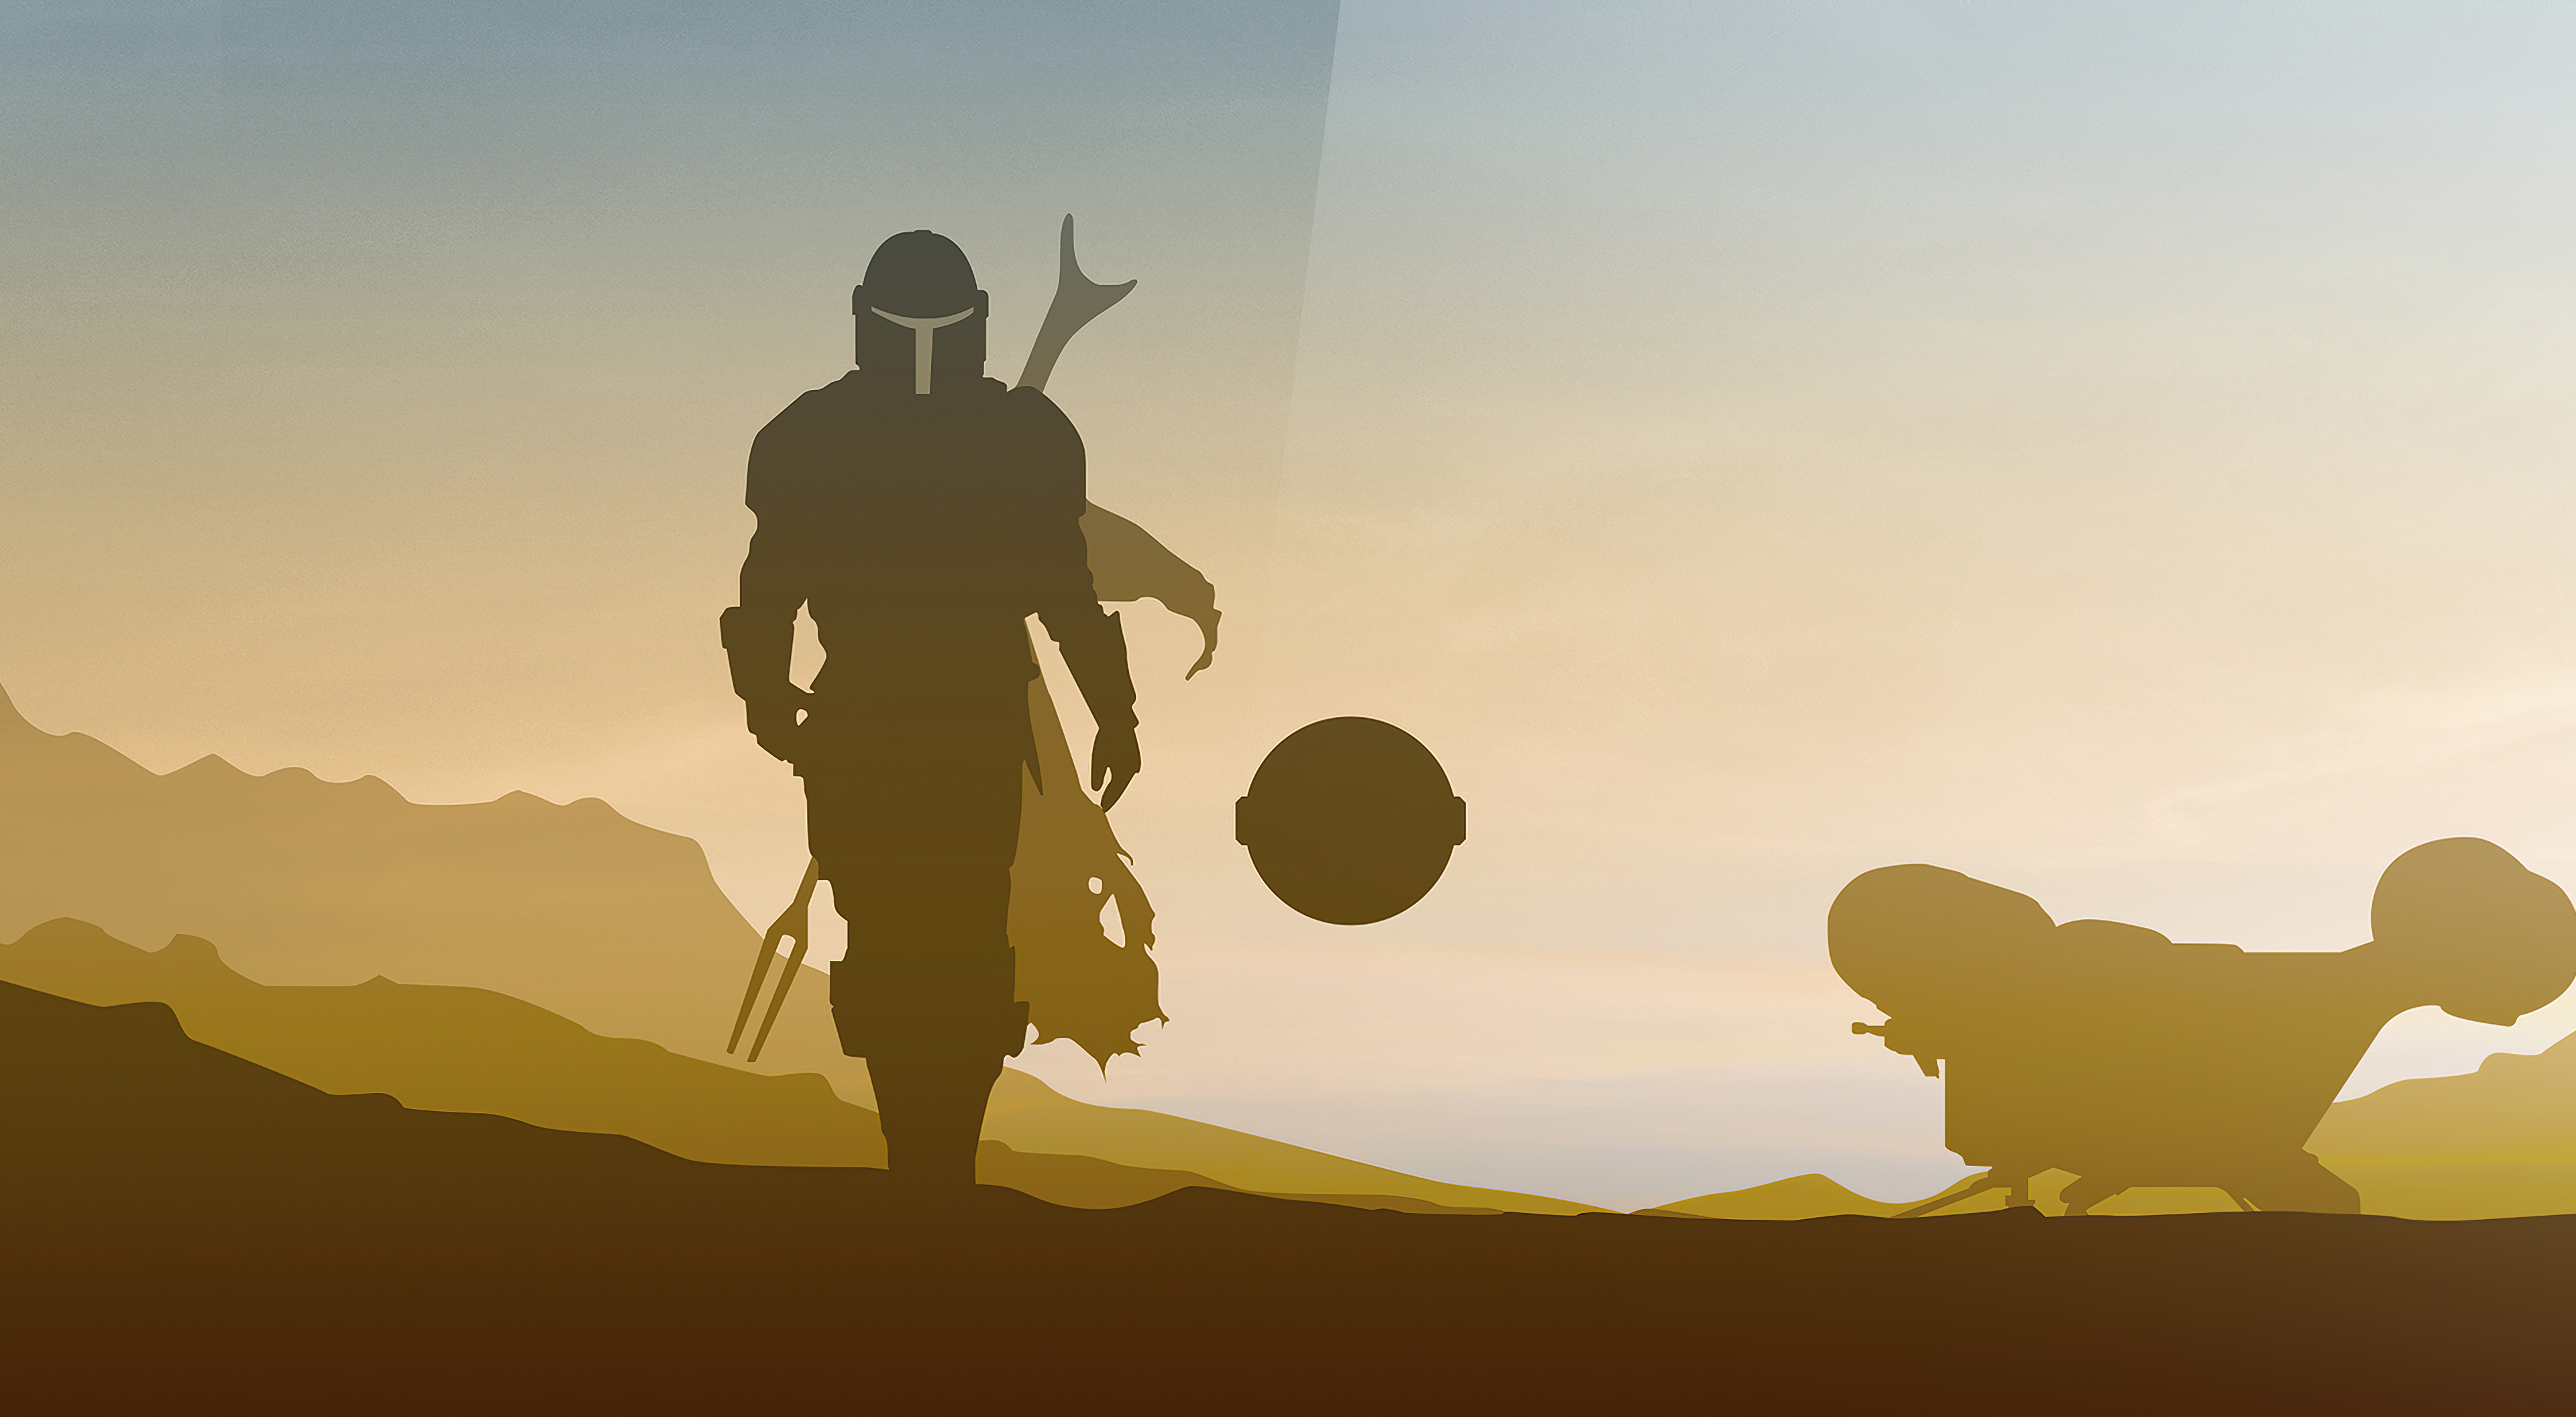 Star Wars The Mandalorian 4k Minimalist Wallpaper Hd Minimalist 4k Wallpapers Images Photos And Background